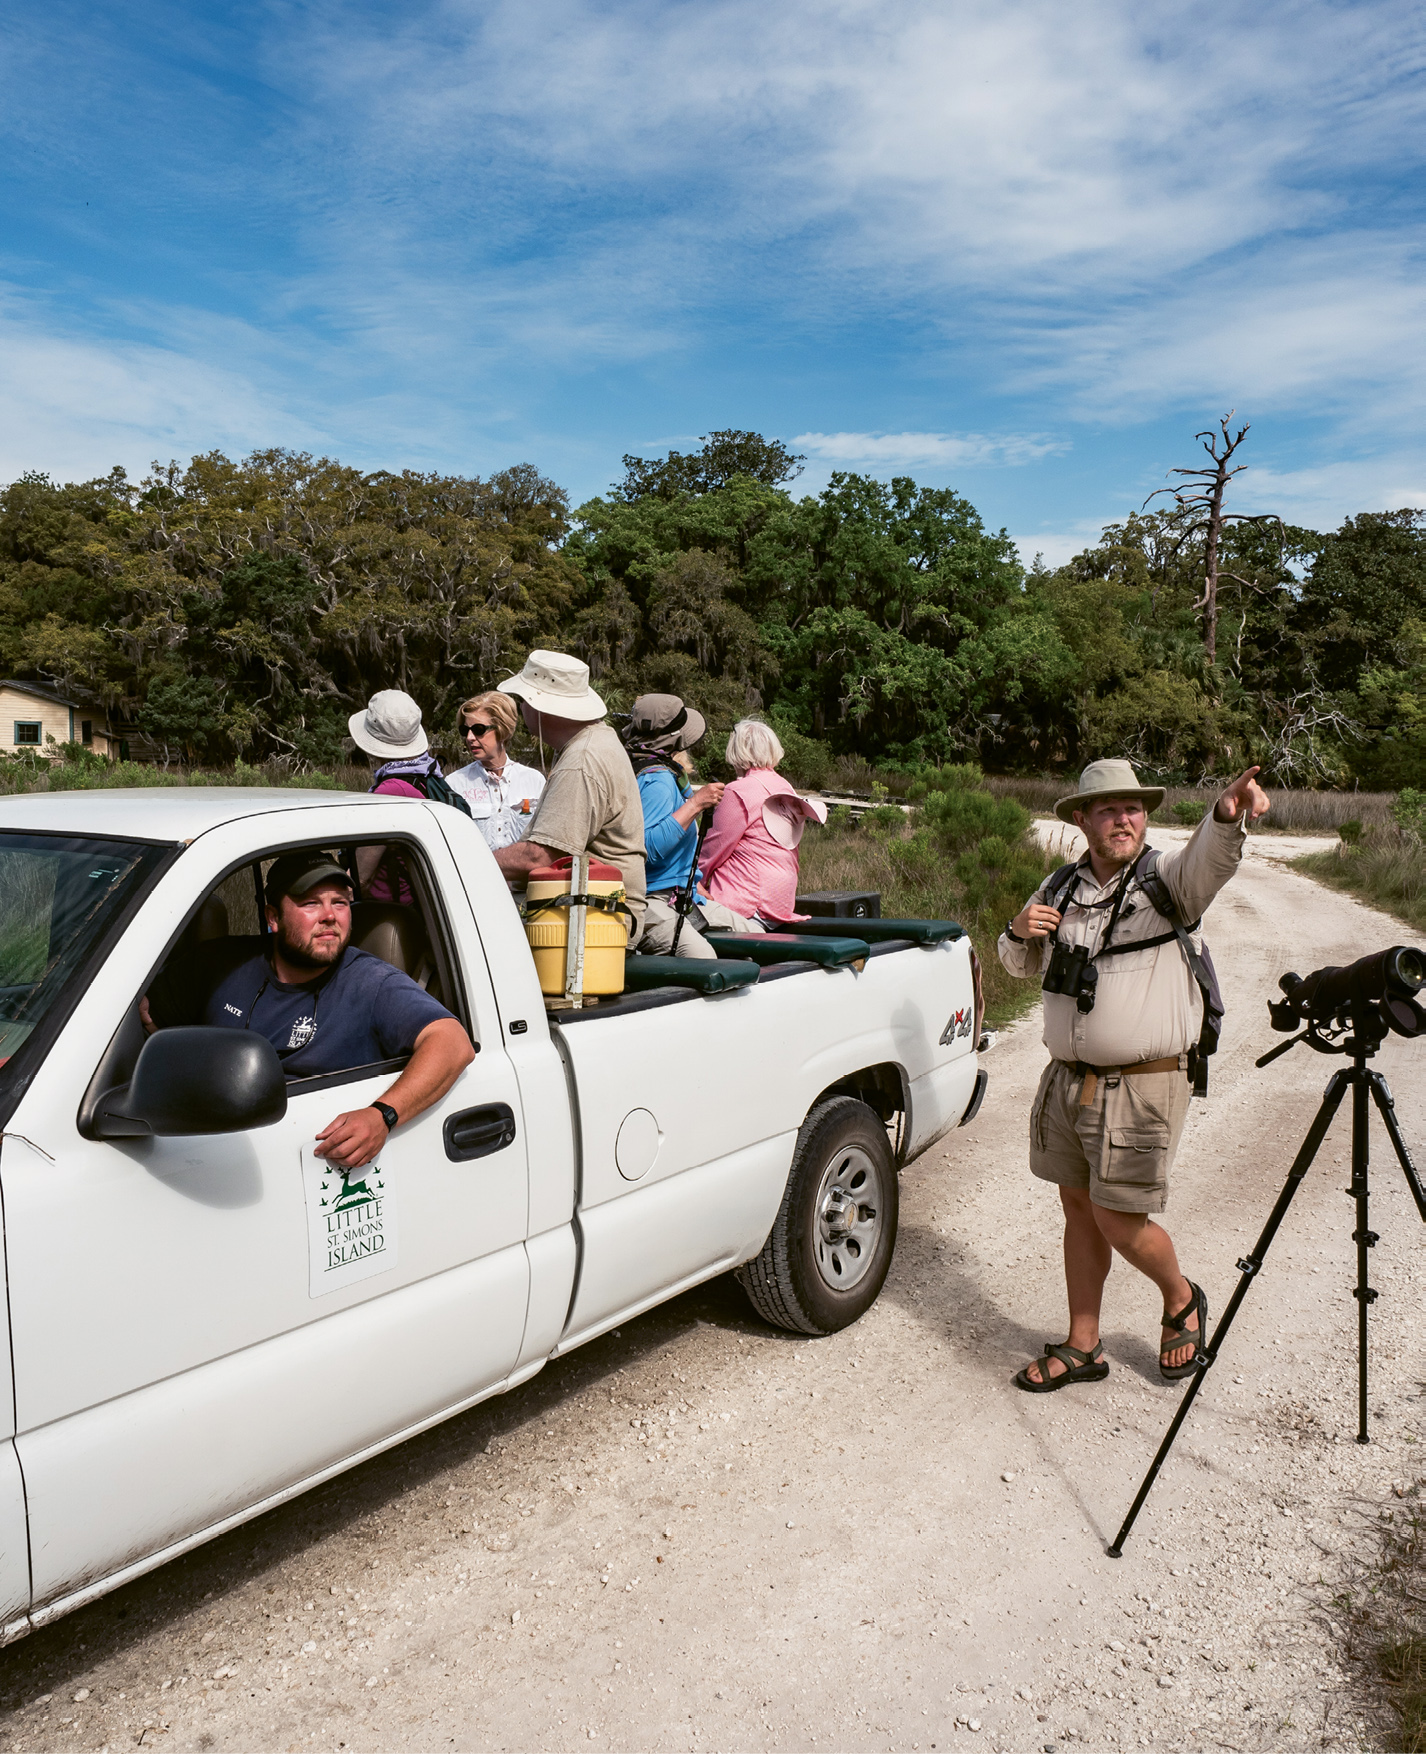 Winged adventures: Naturalist-led tours are offered several times each day on Little St. Simons Island, where more than 280 bird species have been observed.